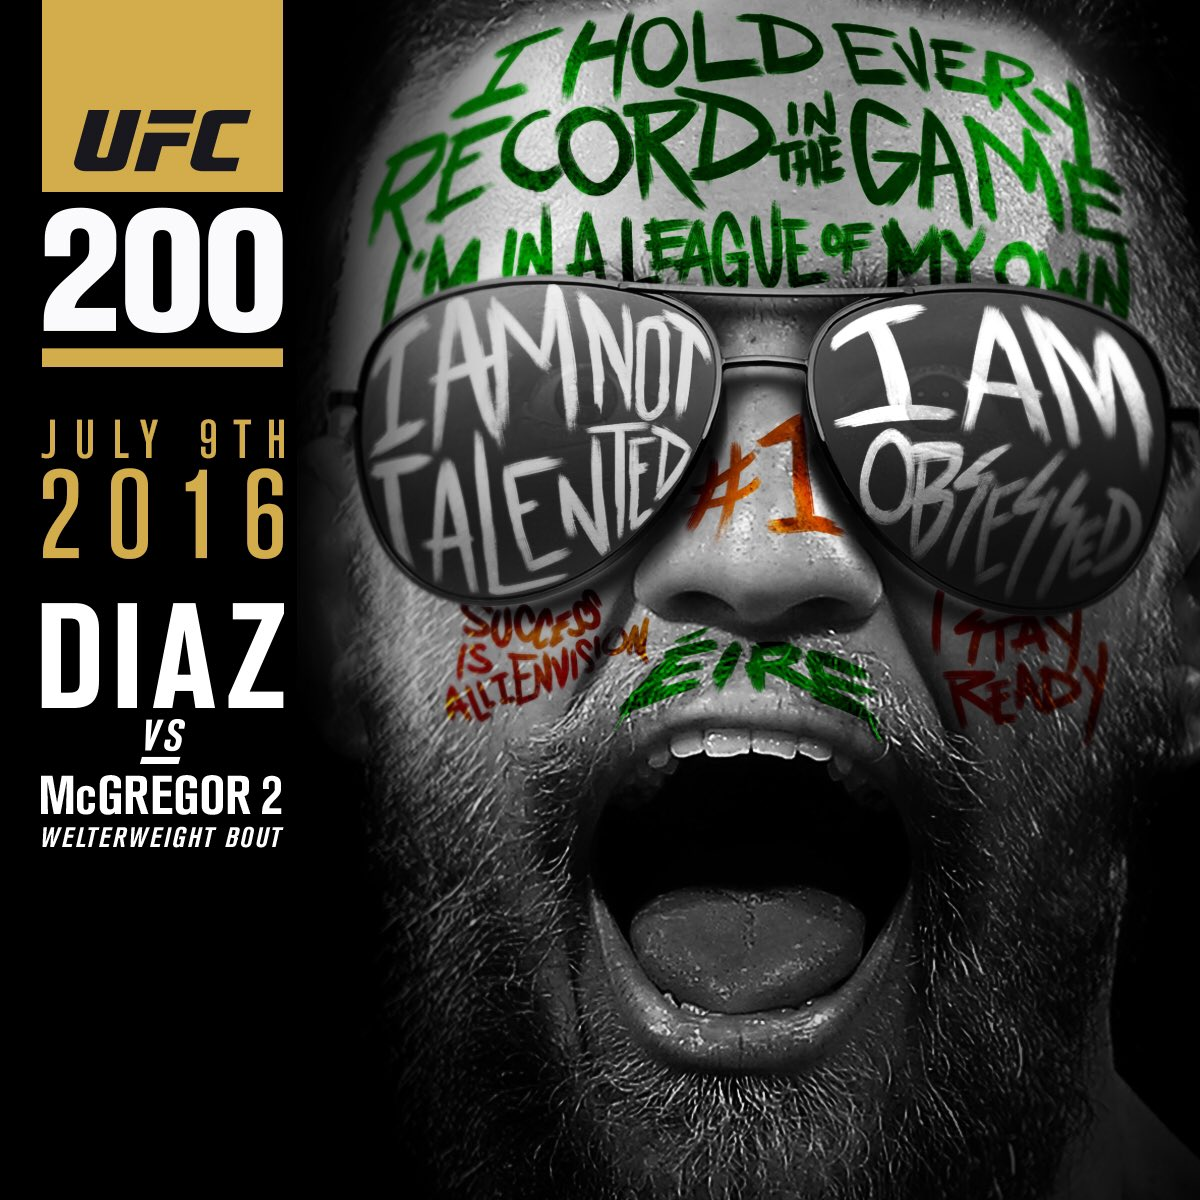 Conor McGregor在UFC 200上与Nate Diaz进行了复赛